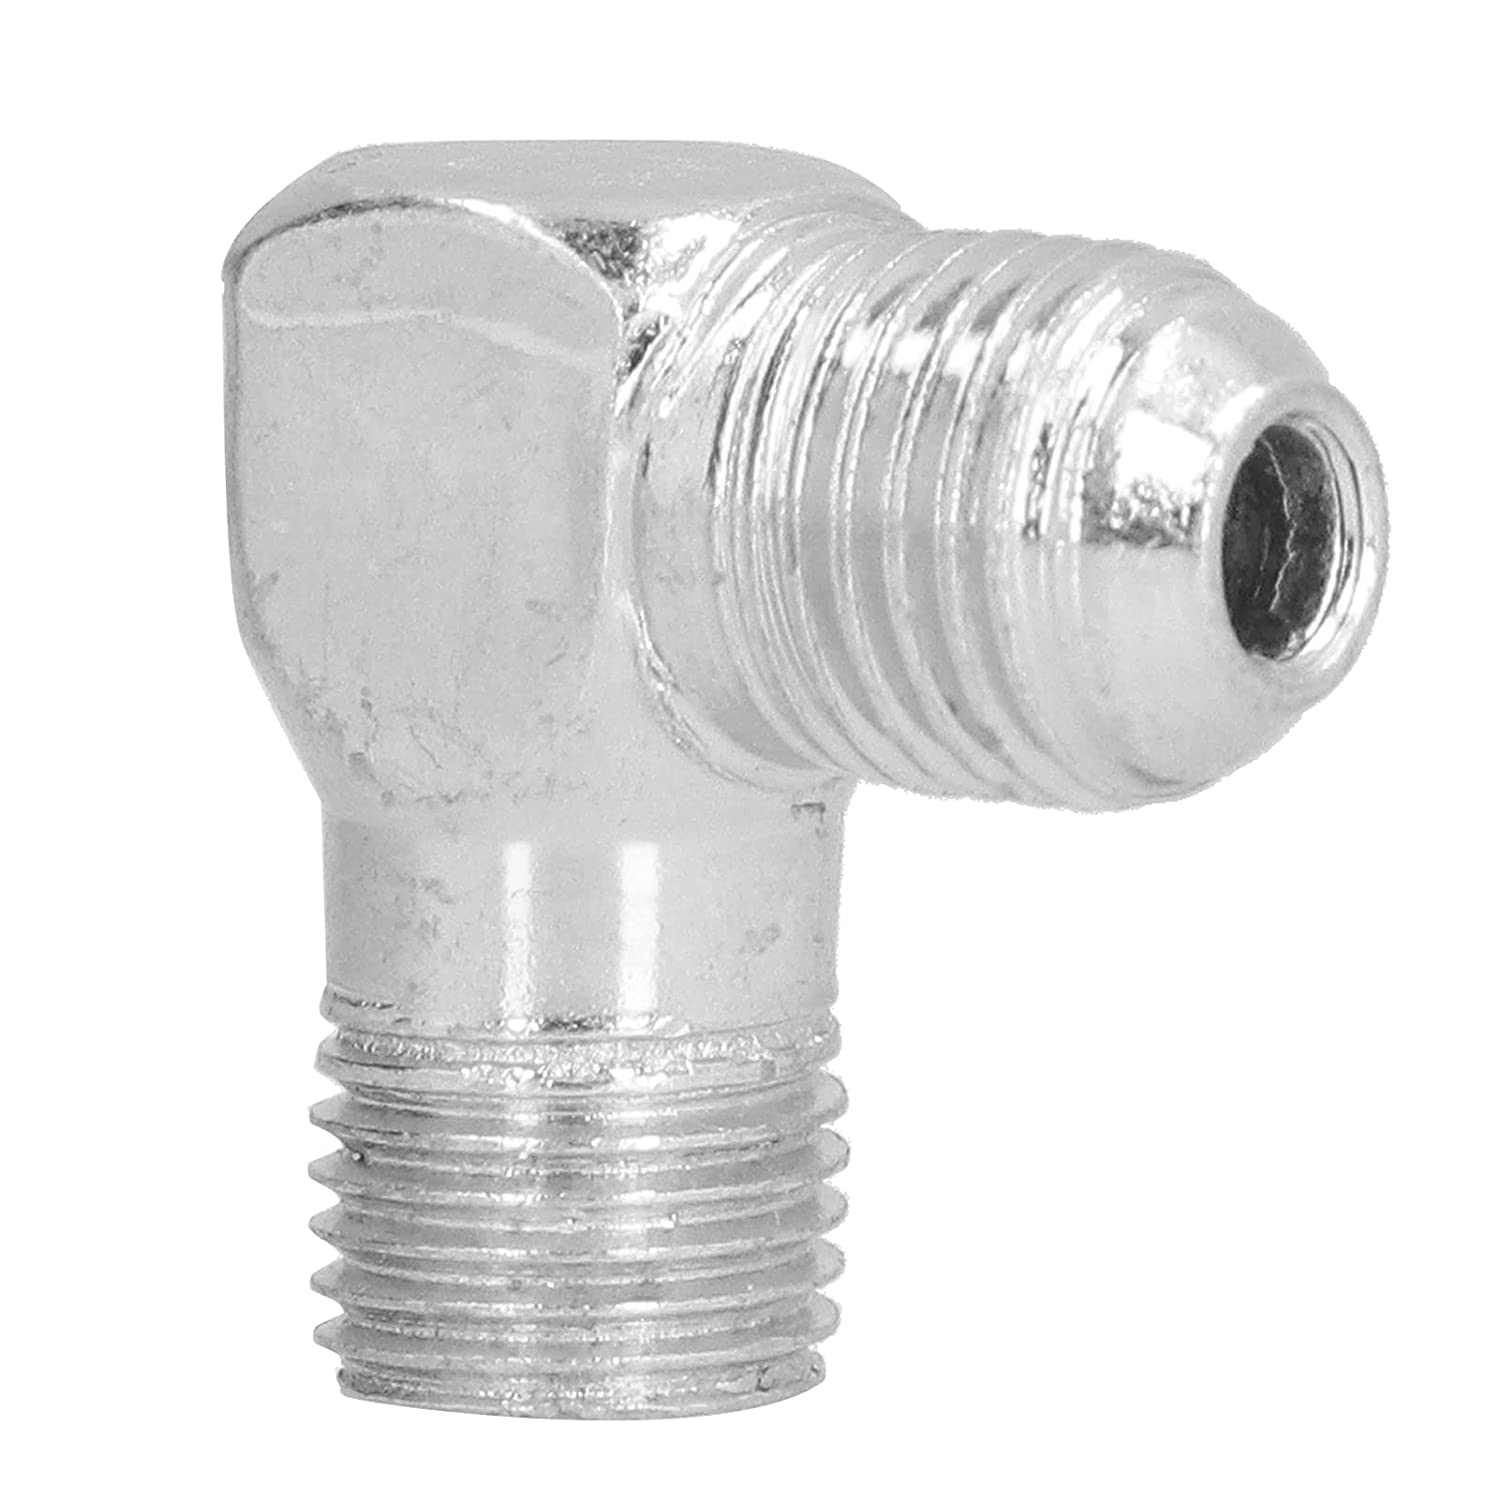 10Pcs Iron Elbow Metals Pipe Fitting Limited time Max 47% OFF trial price Lon Durable 1 White 14mm 4